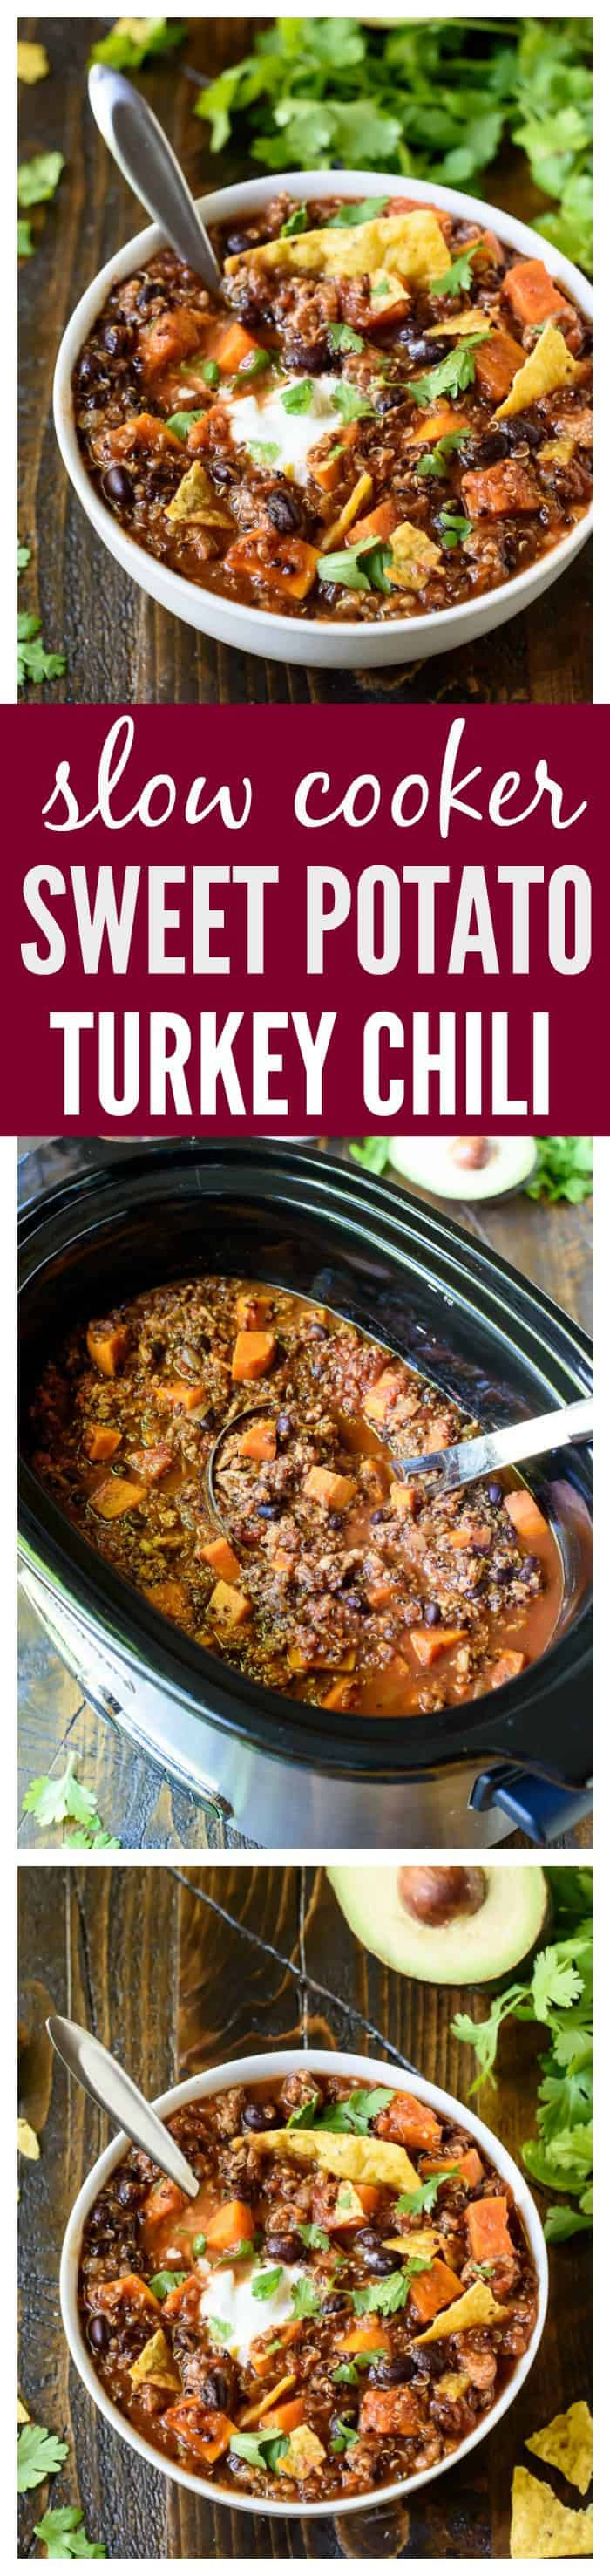 Slow Cooker Turkey Quinoa Chili with Sweet Potatoes and Black Beans. The best crock pot turkey chili recipe I've ever made! #crockpot #slowcooker #chili #recipe